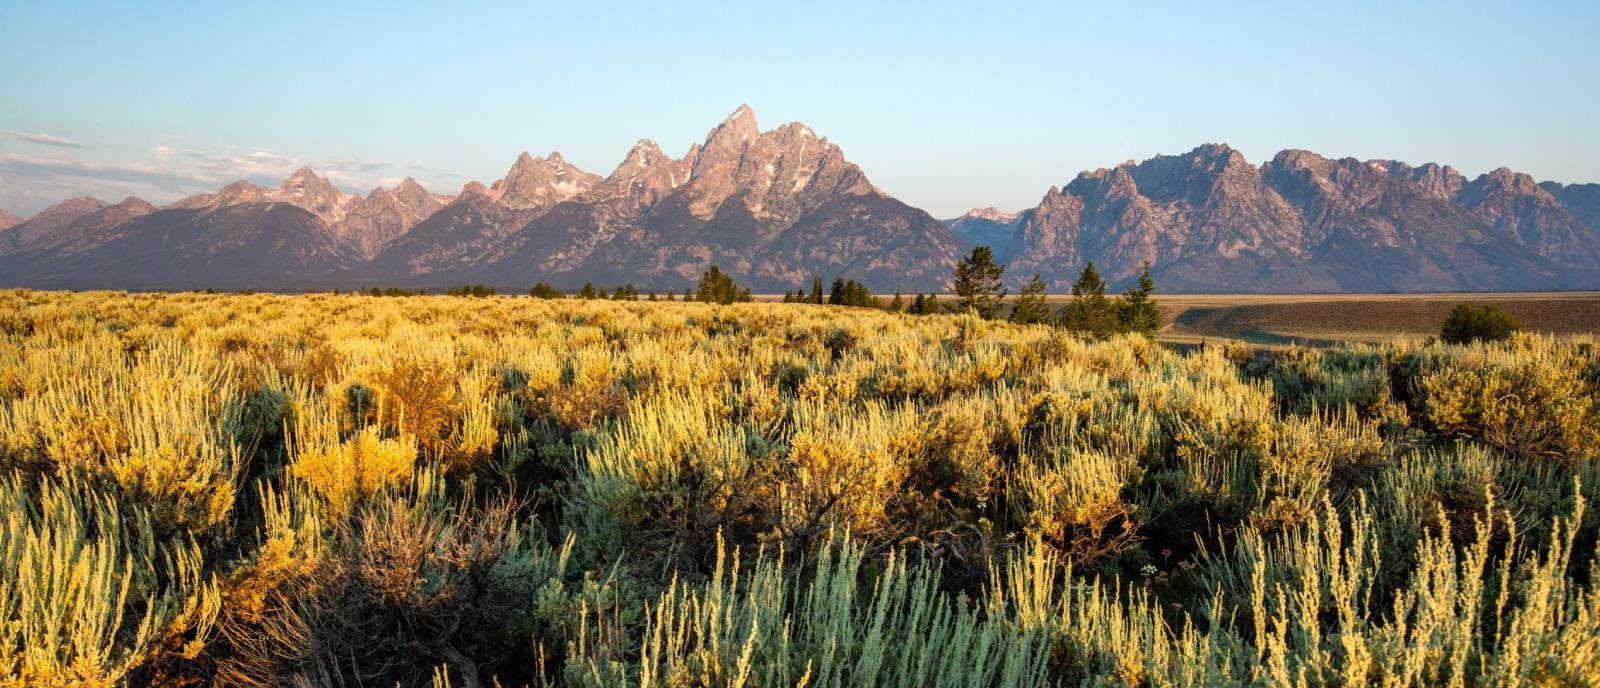 U.S. Senate Overwhelmingly Passes Historic Conservation Legislation